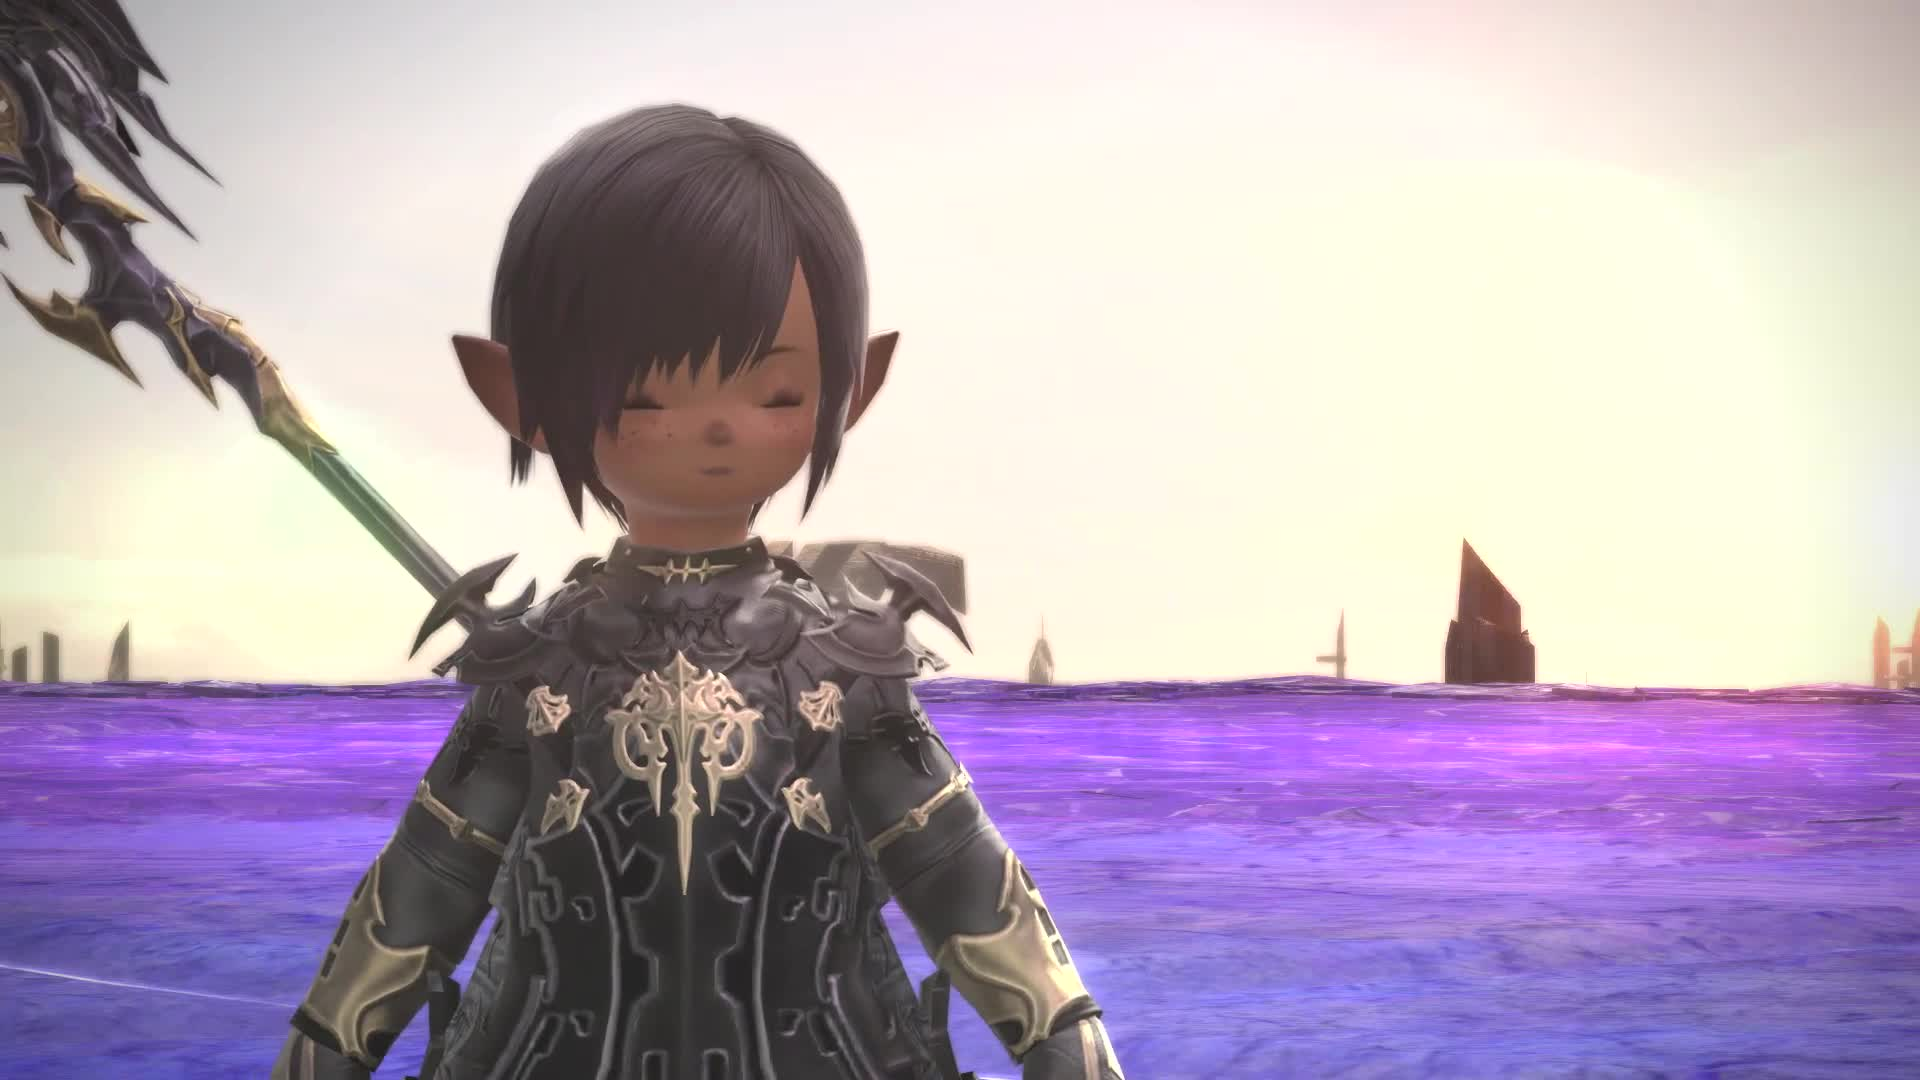 Baked, Baked Weeb, Ending, FFXIV, Final, Final Fantasy XIV, Gaming, Shadowbringers, Spoilers, Theme, Tomorrow and Tomorrow, Weeb, Final Fantasy XIV Shadowbringers OST -  Ending Theme (HEAVY MSQ SPOILERS) GIFs